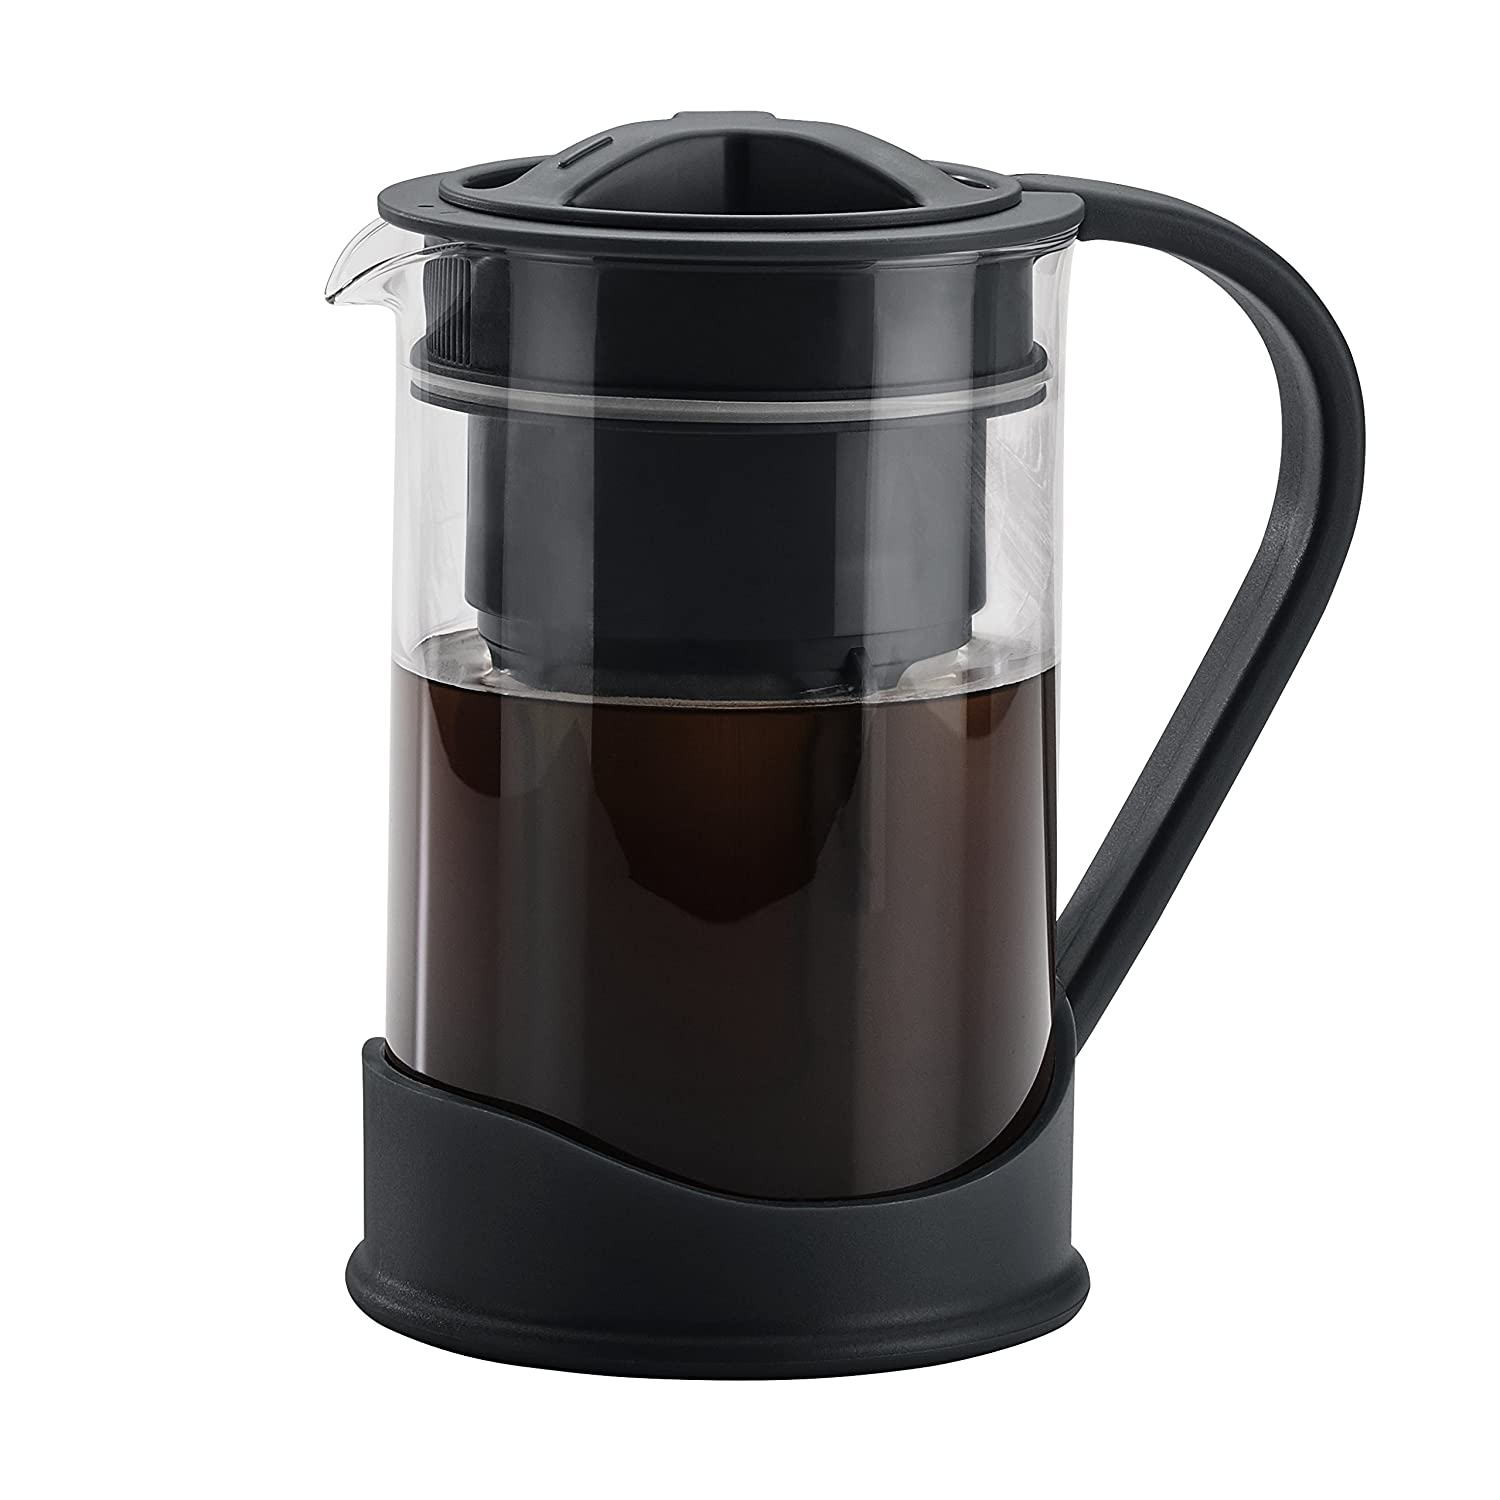 BonJour 50.7oz Cold Brew Coffee Maker, Black 47112.0